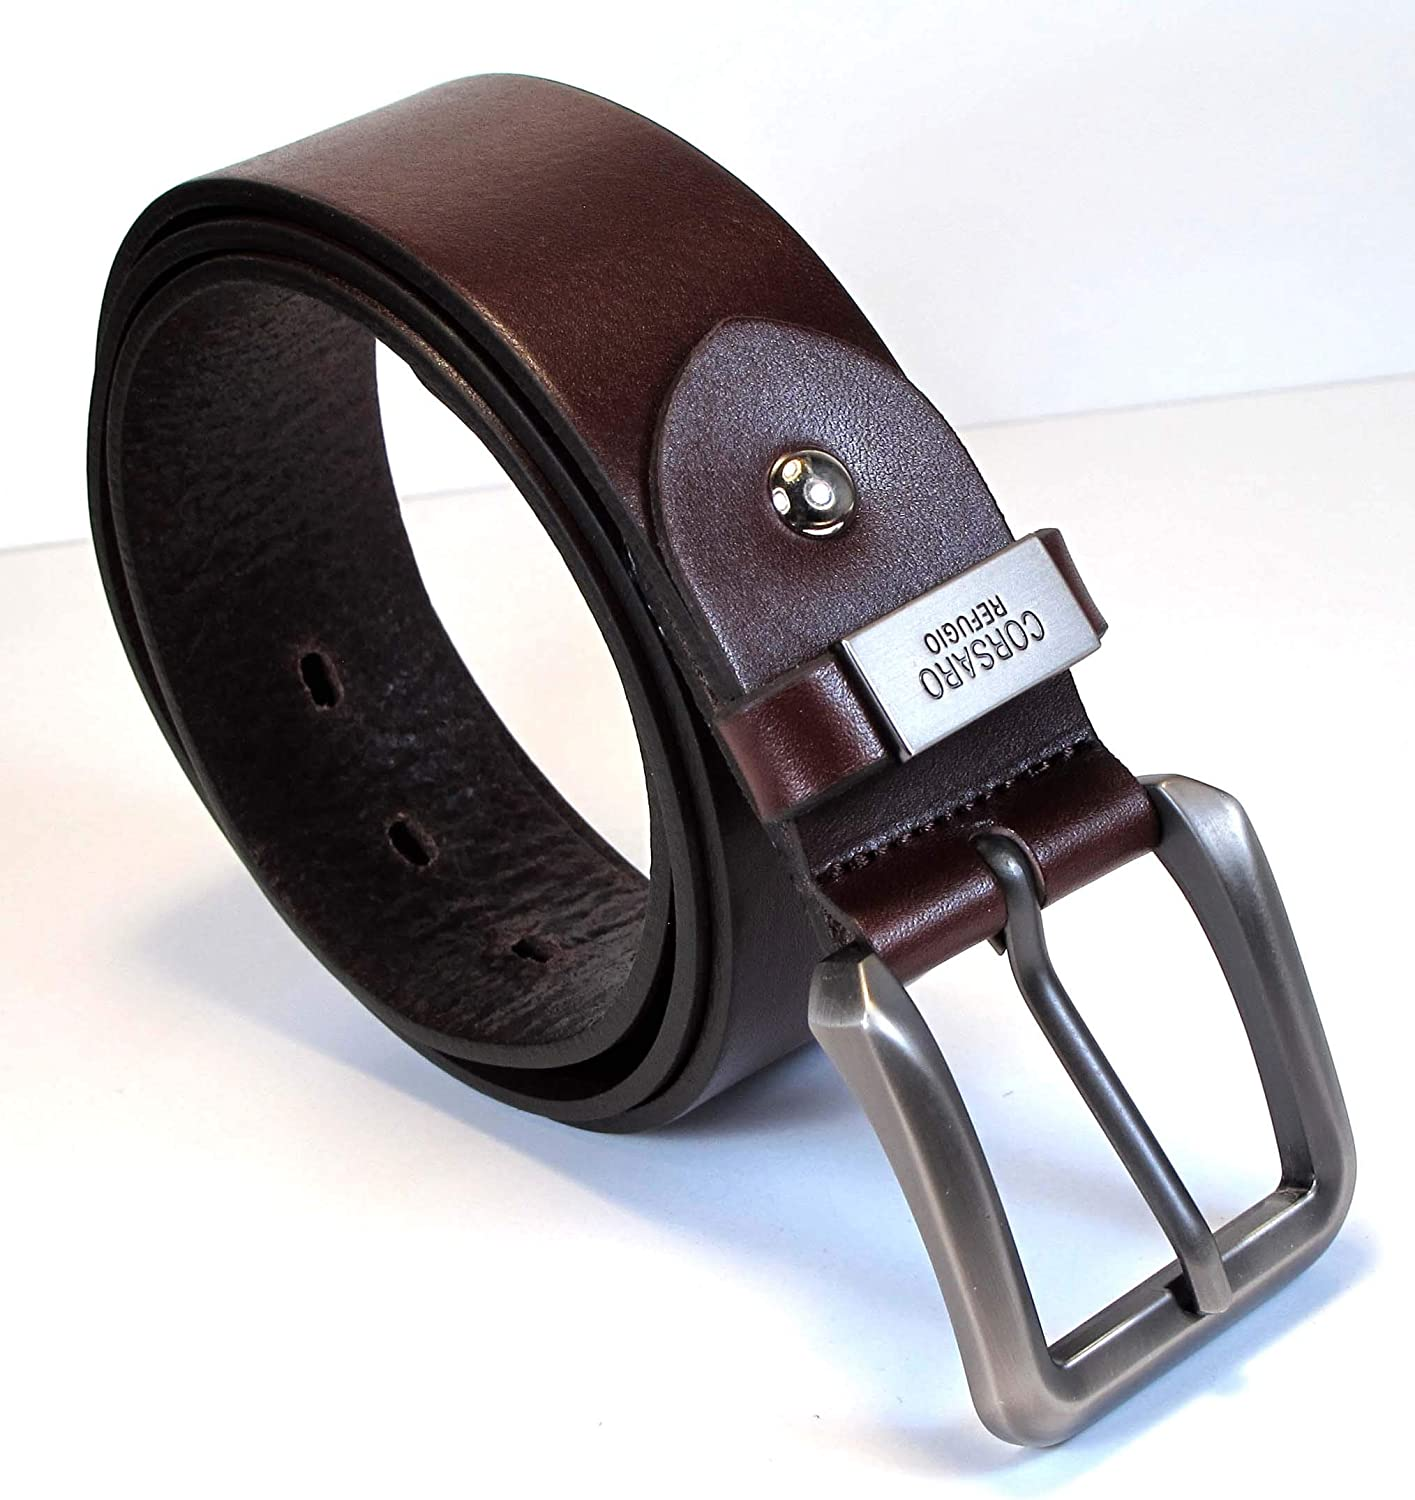 TM7 Mens Real Genuine Leather Belt Black Brown White 1.5 Wide S-XL Casual Jeans